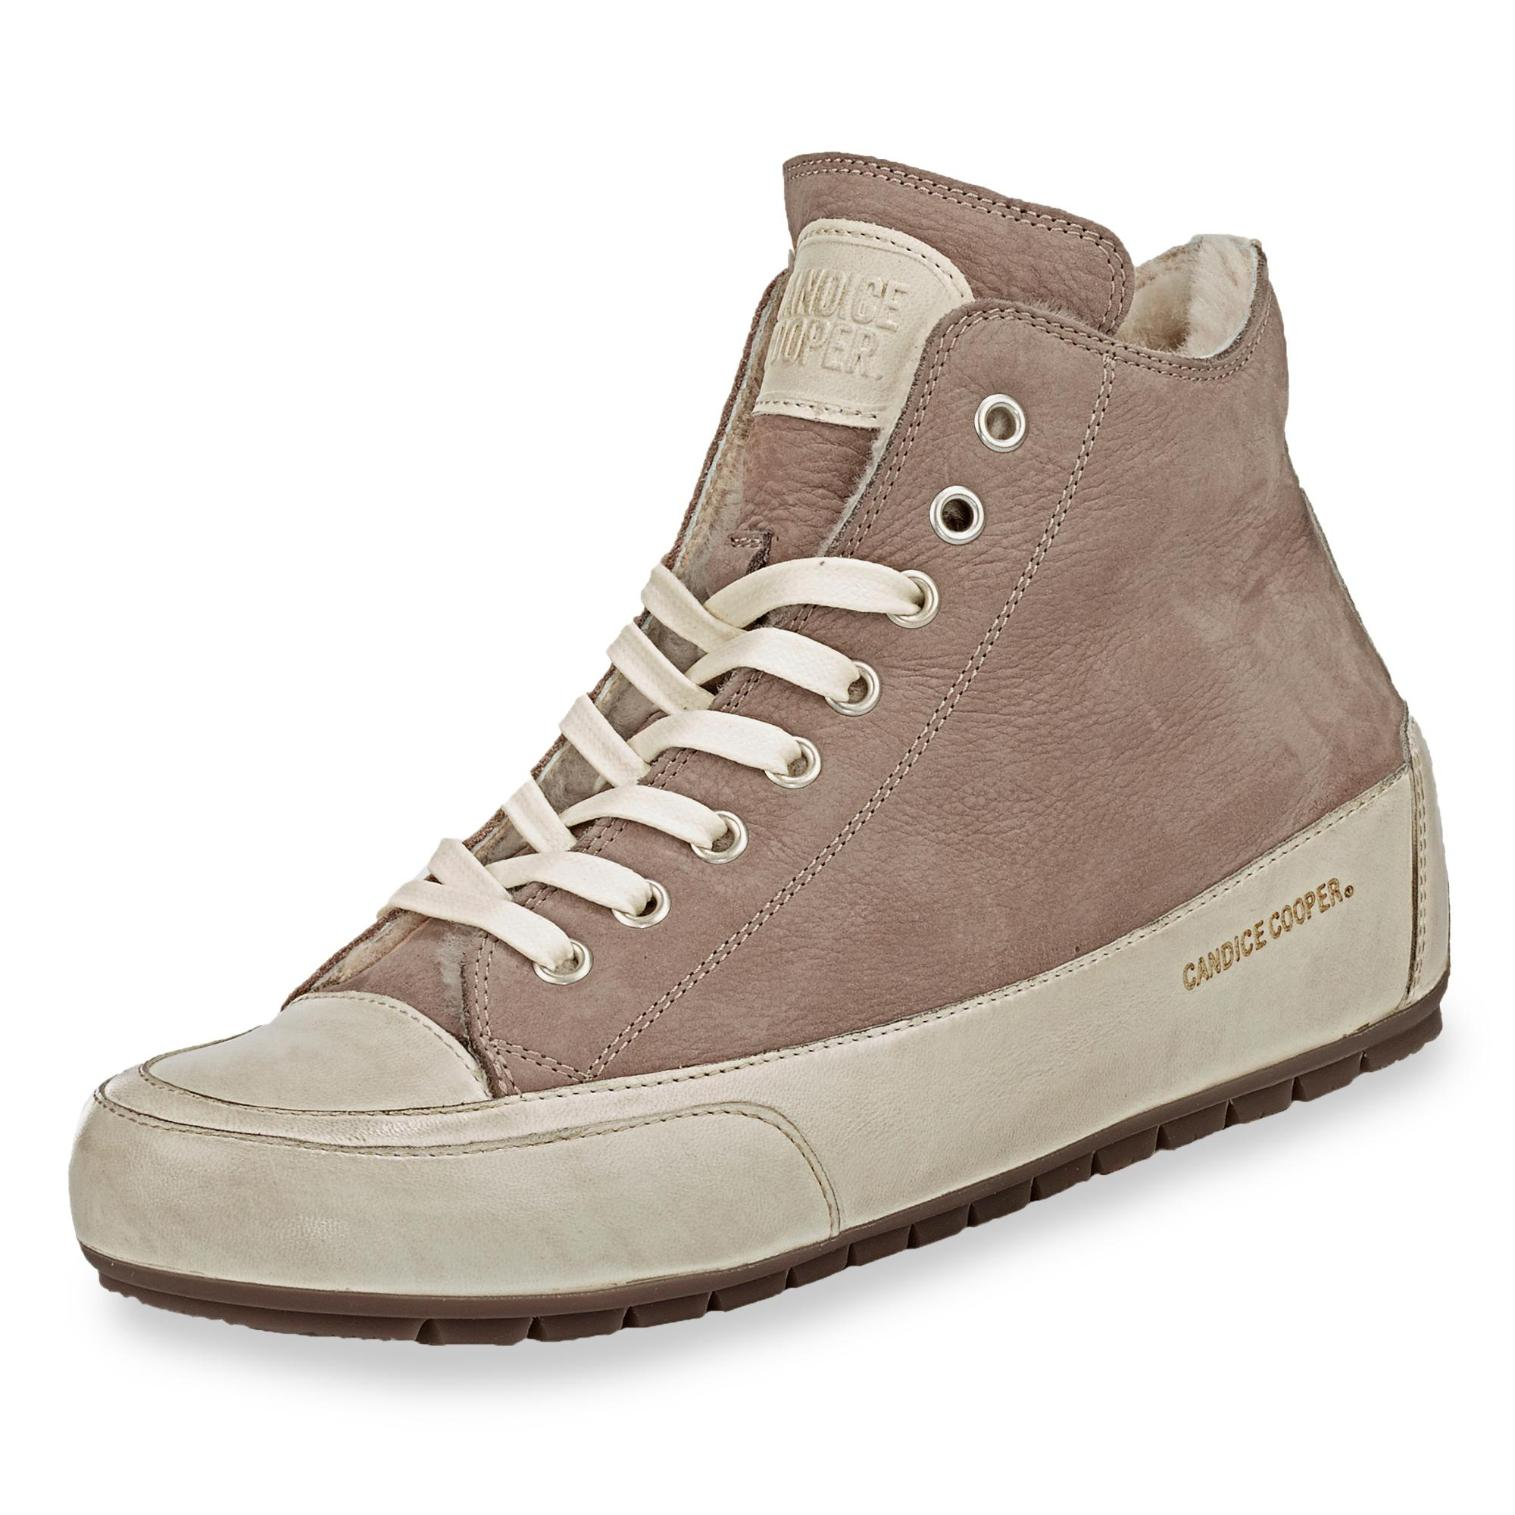 Candice Cooper Plus Sneaker in Farbe taupe taupe Farbe um 25% reduziert online kaufen 1ce638